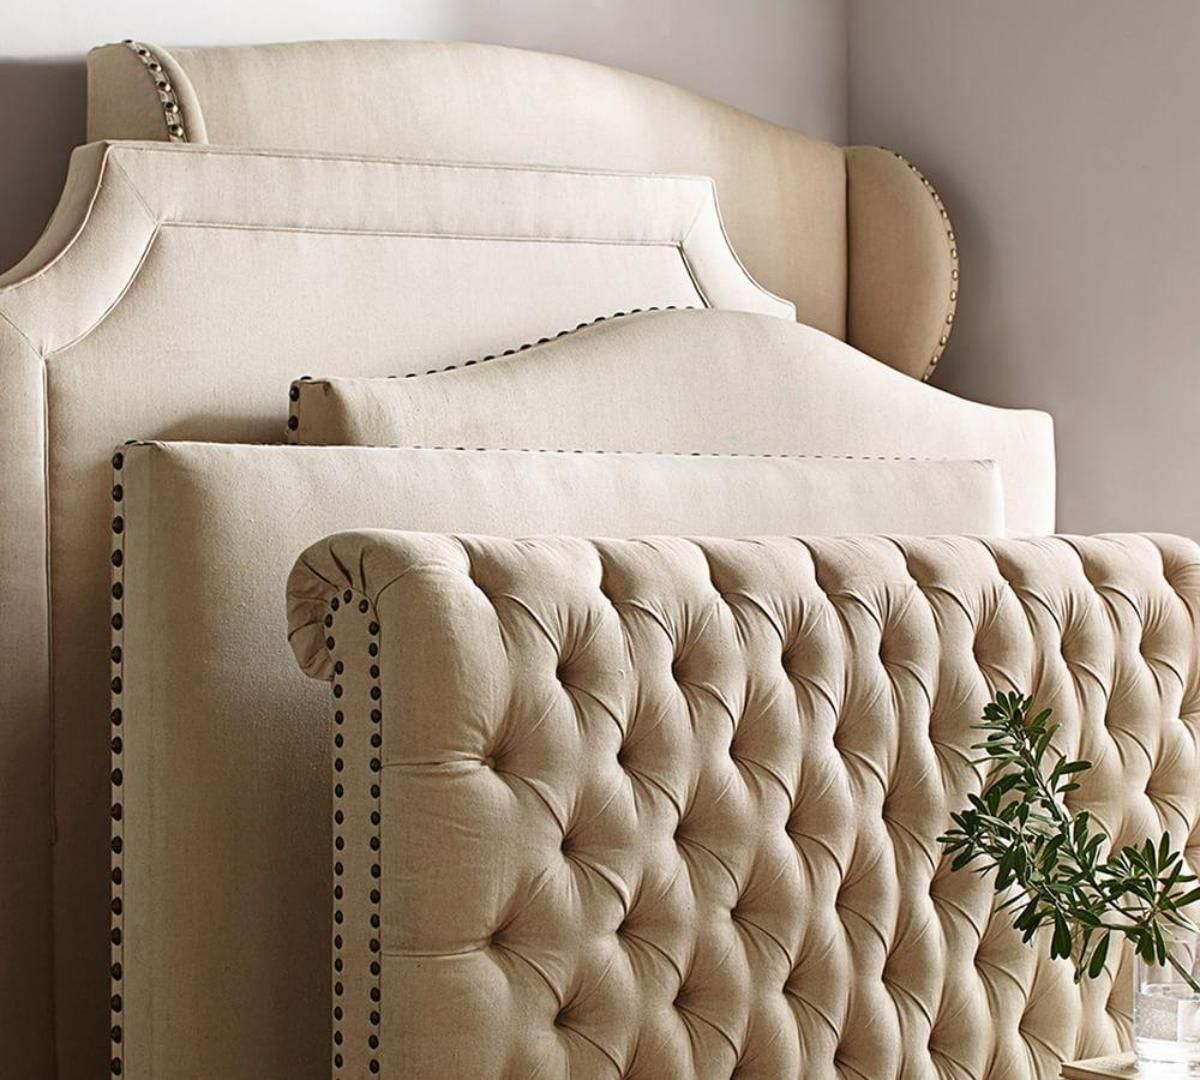 decorations pottery com for prepare frame grey square fillmore bed barns barn oneloveidaho to upholstered stylish awesome modern pertaining intended headboard